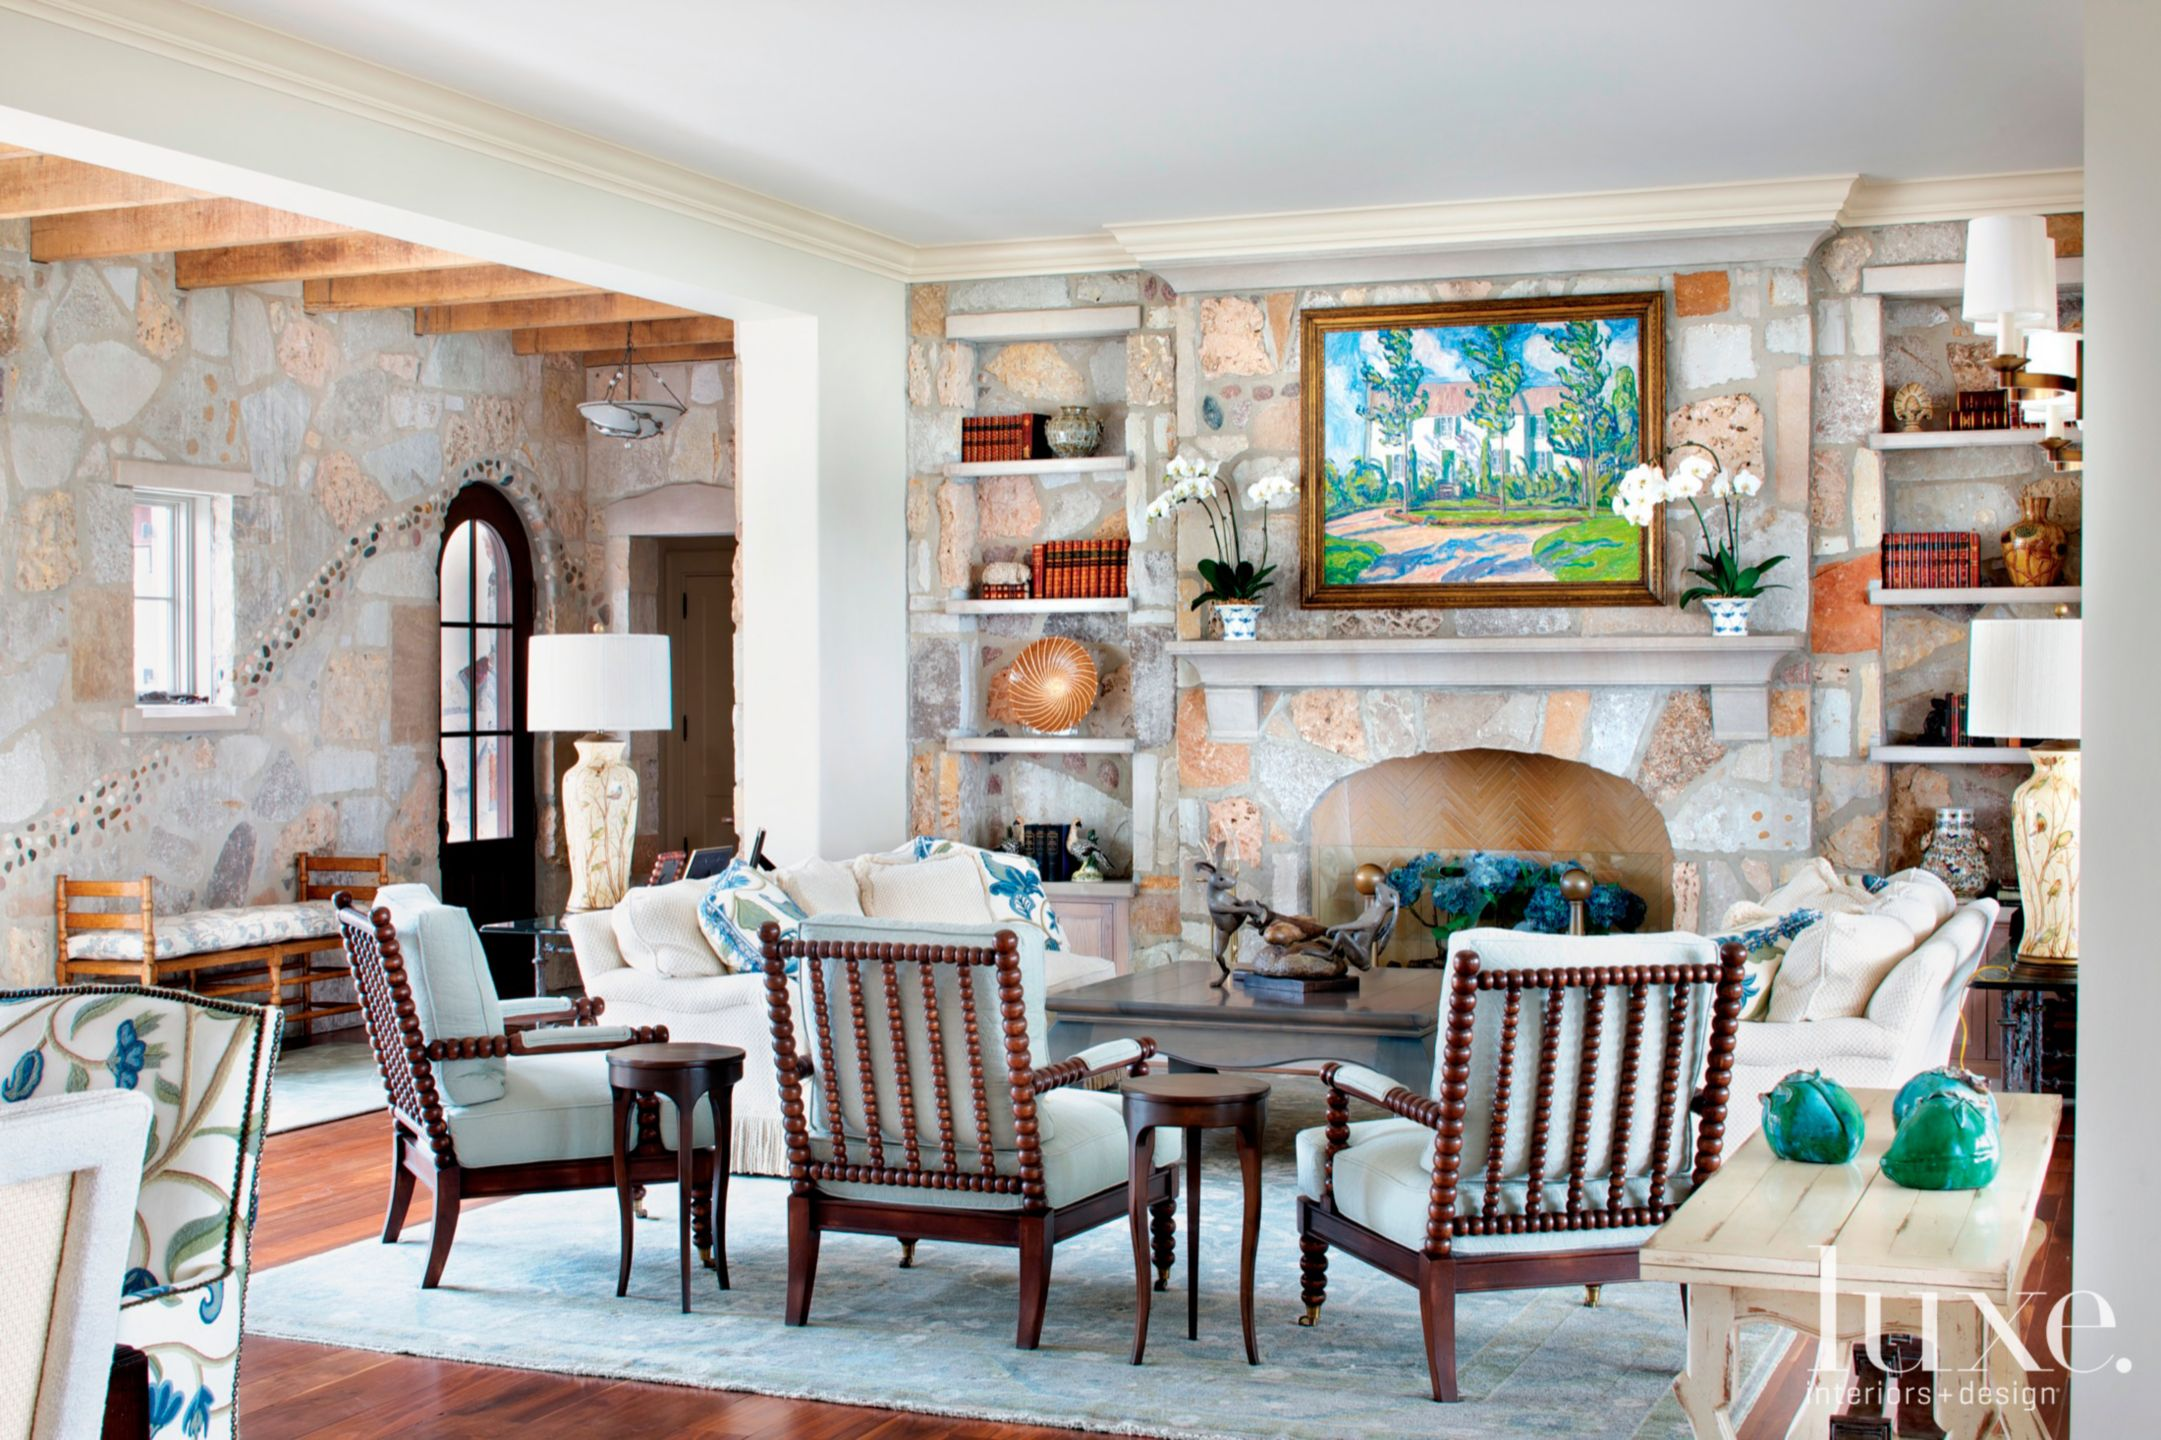 Contemporary Neutral Living Room with Reclaimed Wood and Exposed Stone Fireplace